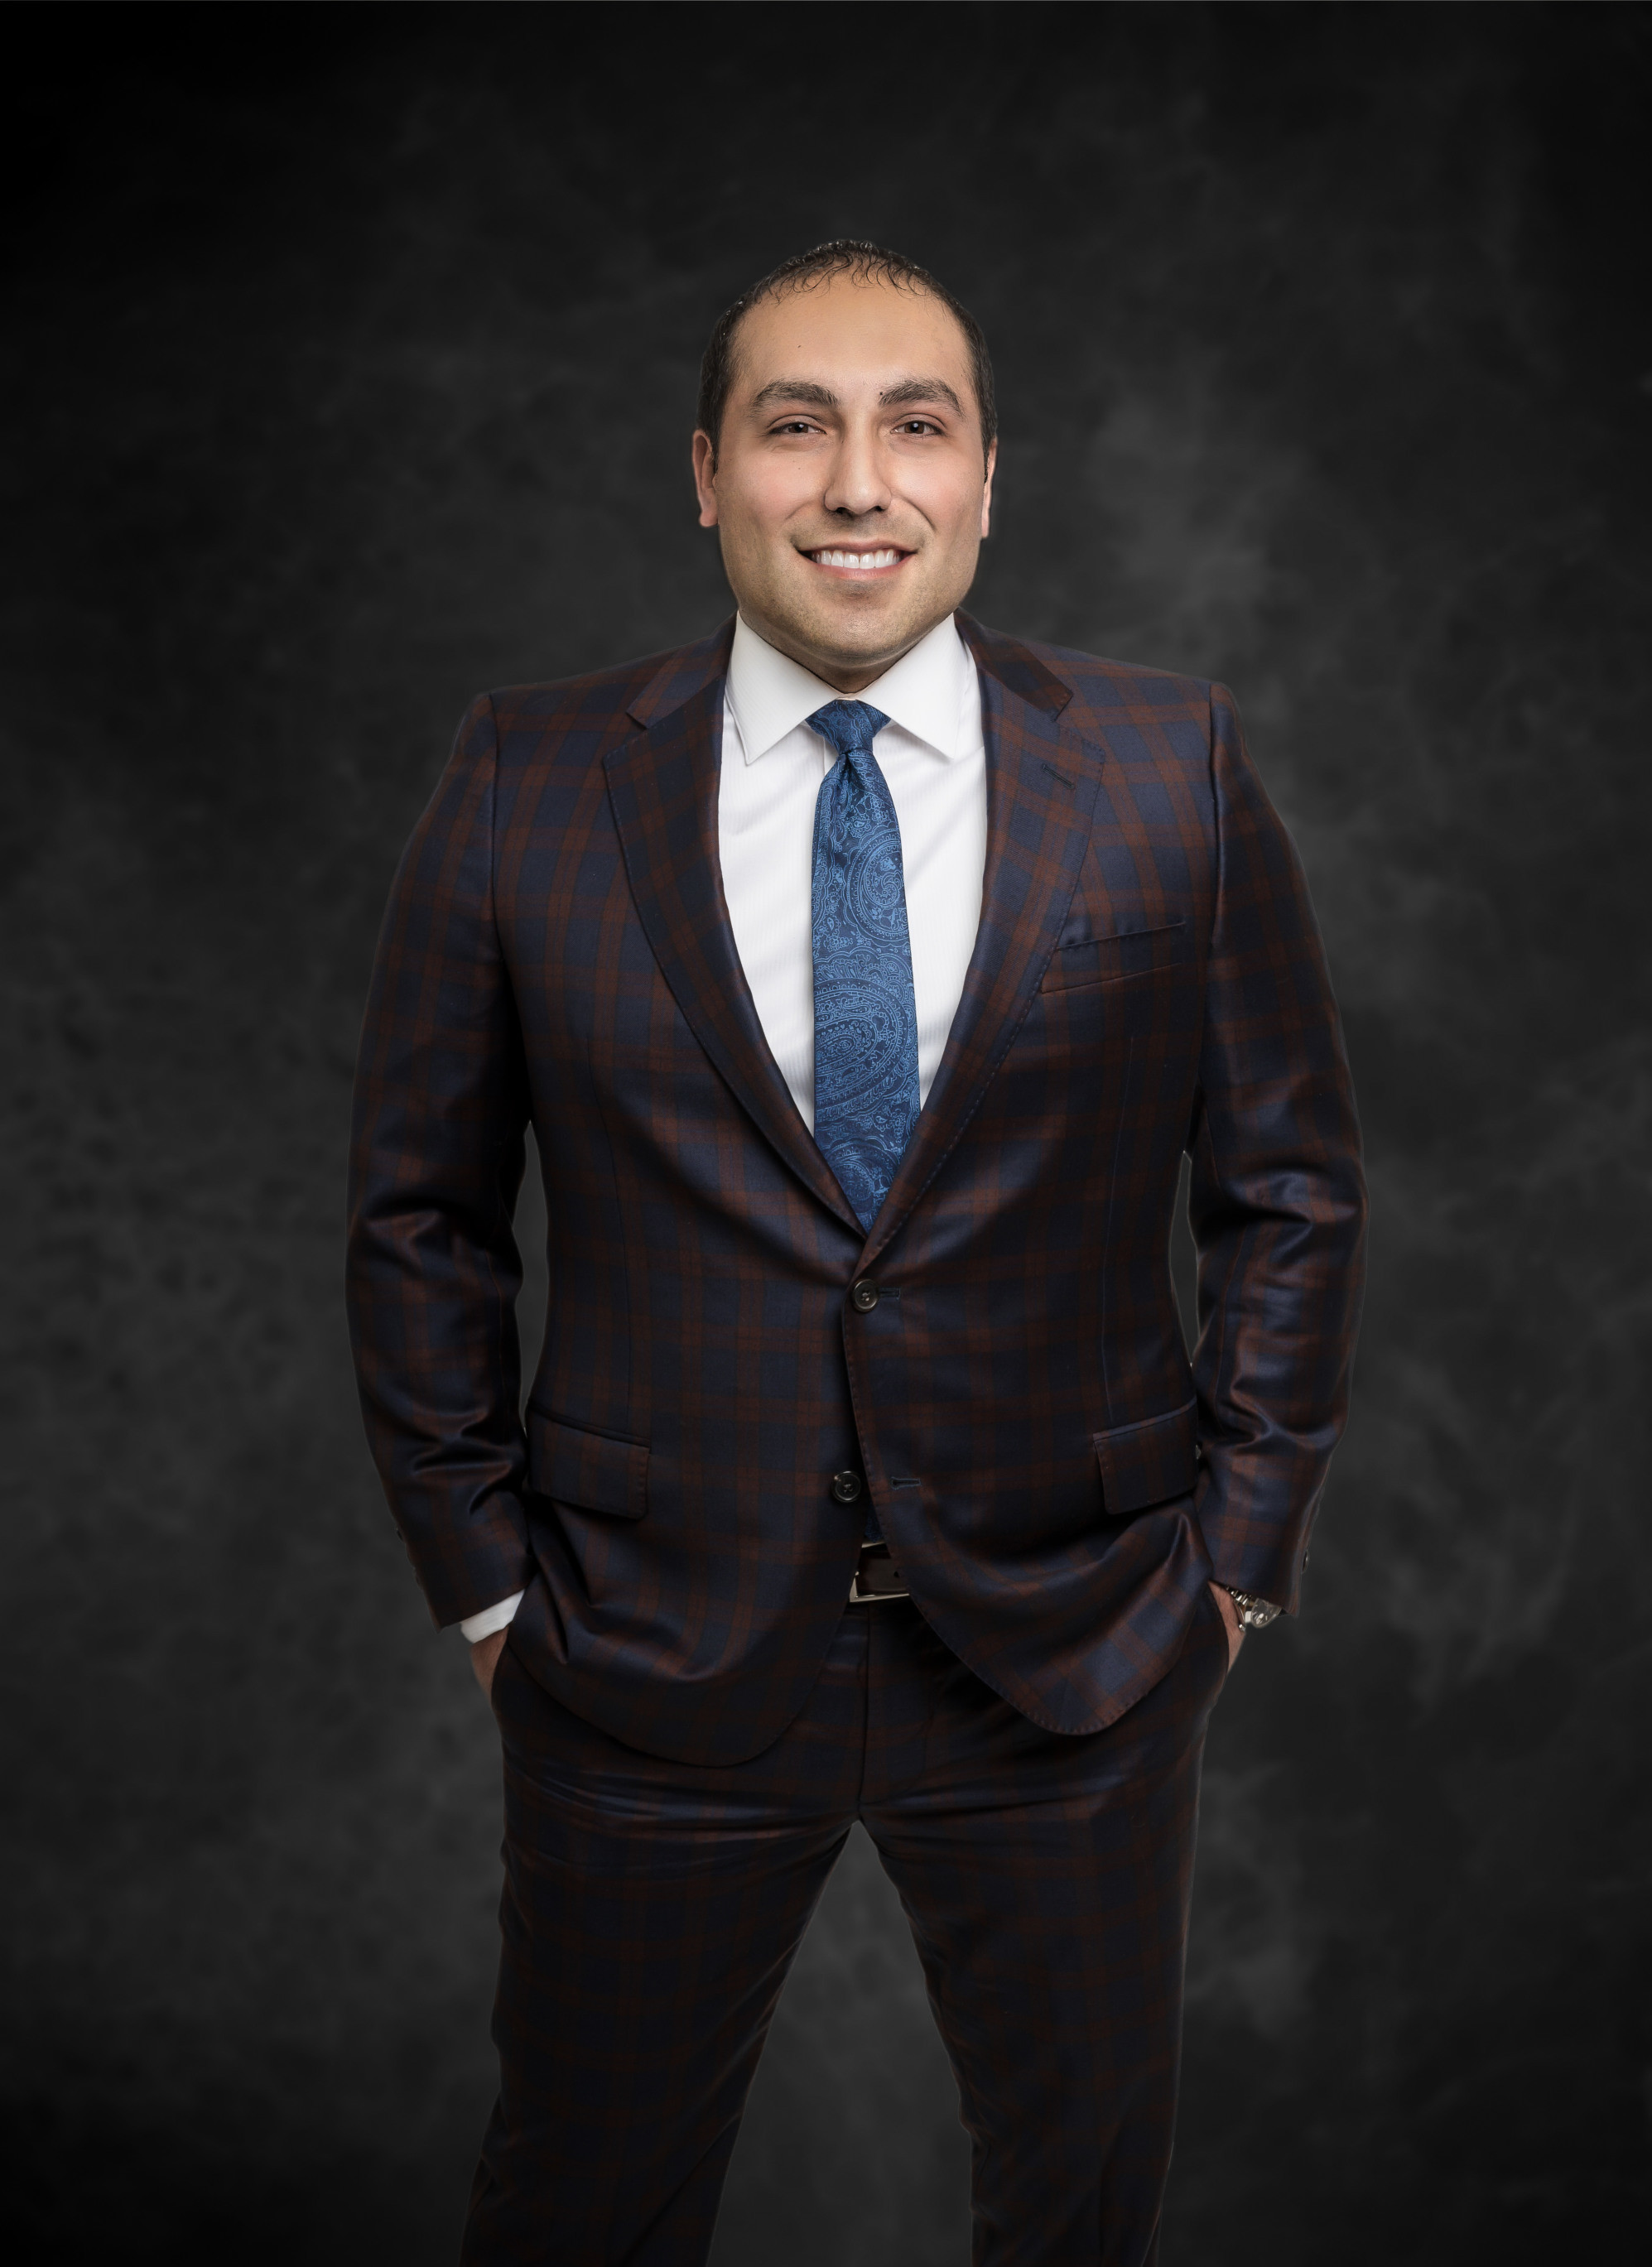 Family Law Attorney, Raul Sandoval